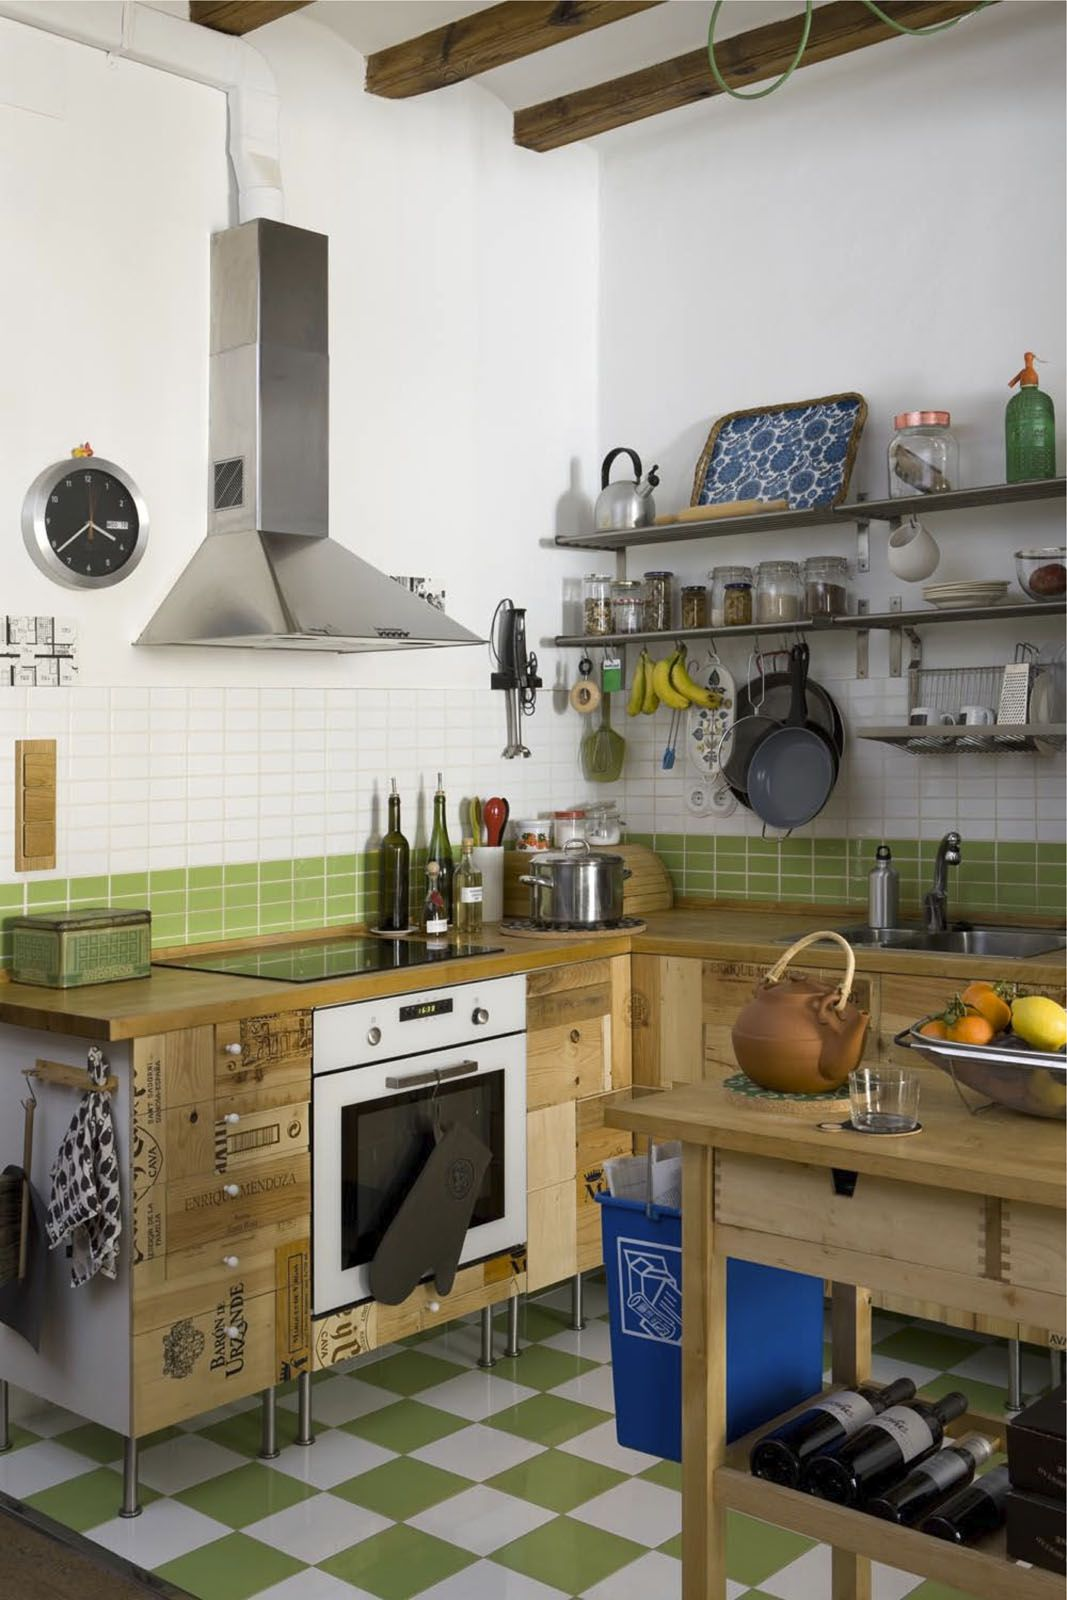 kitchen cabinets made from wine boxes